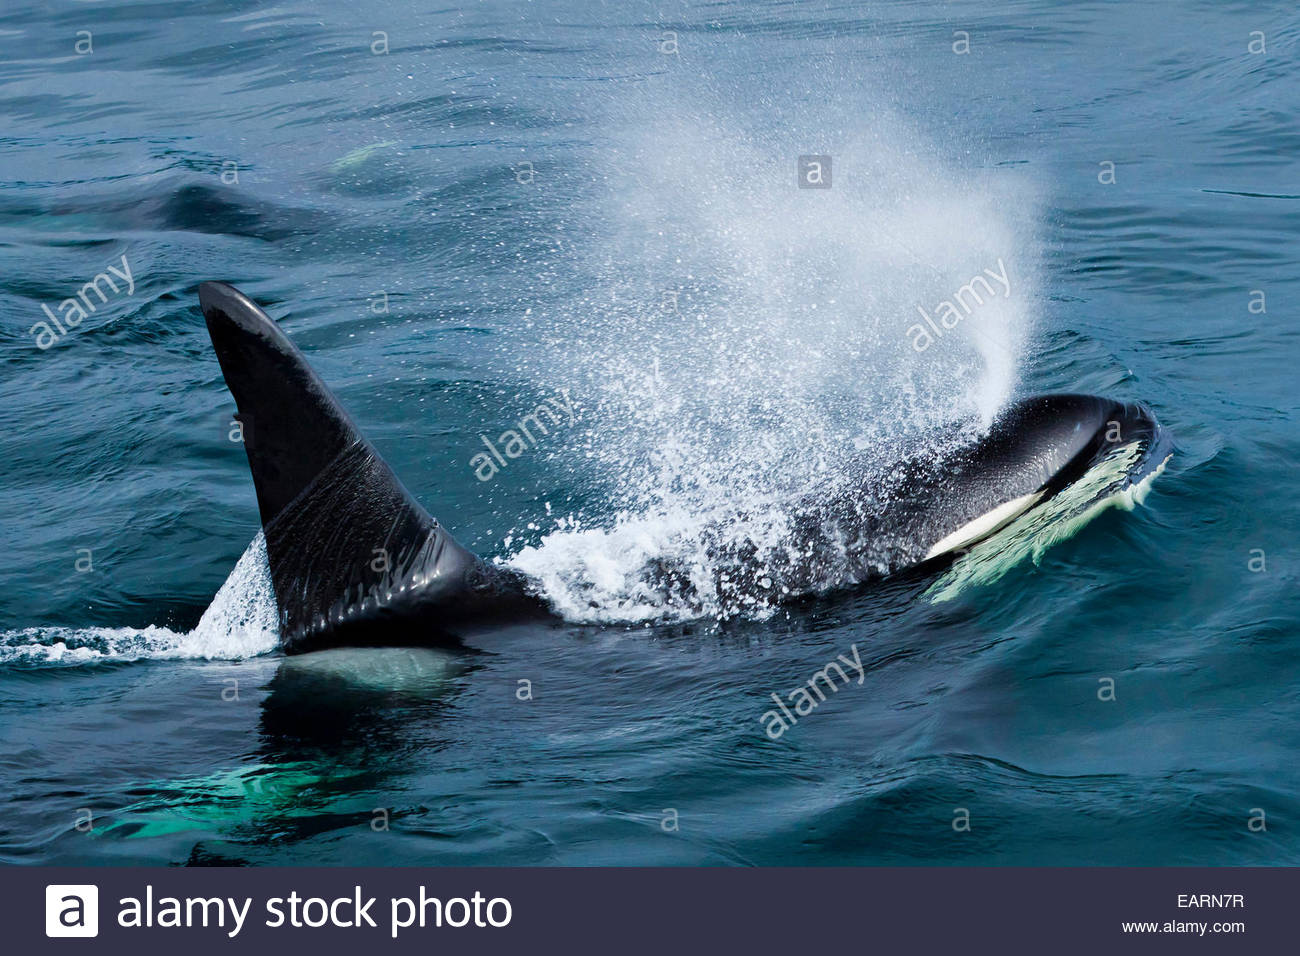 View from above of a killer whale spraying through its blowhole. Stock Photo